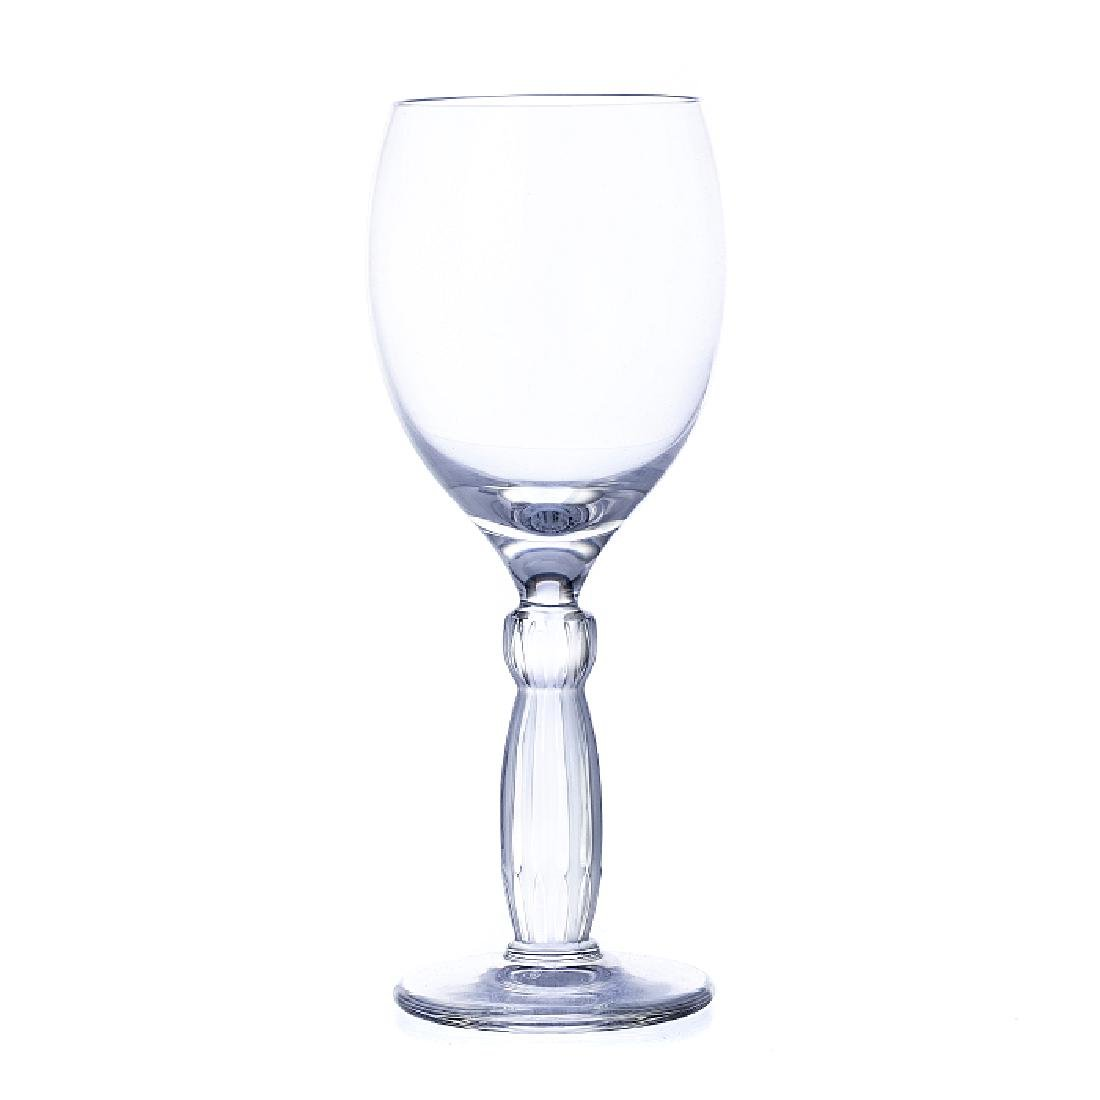 LALIQUE, FRANCE - Twelve wine glasses